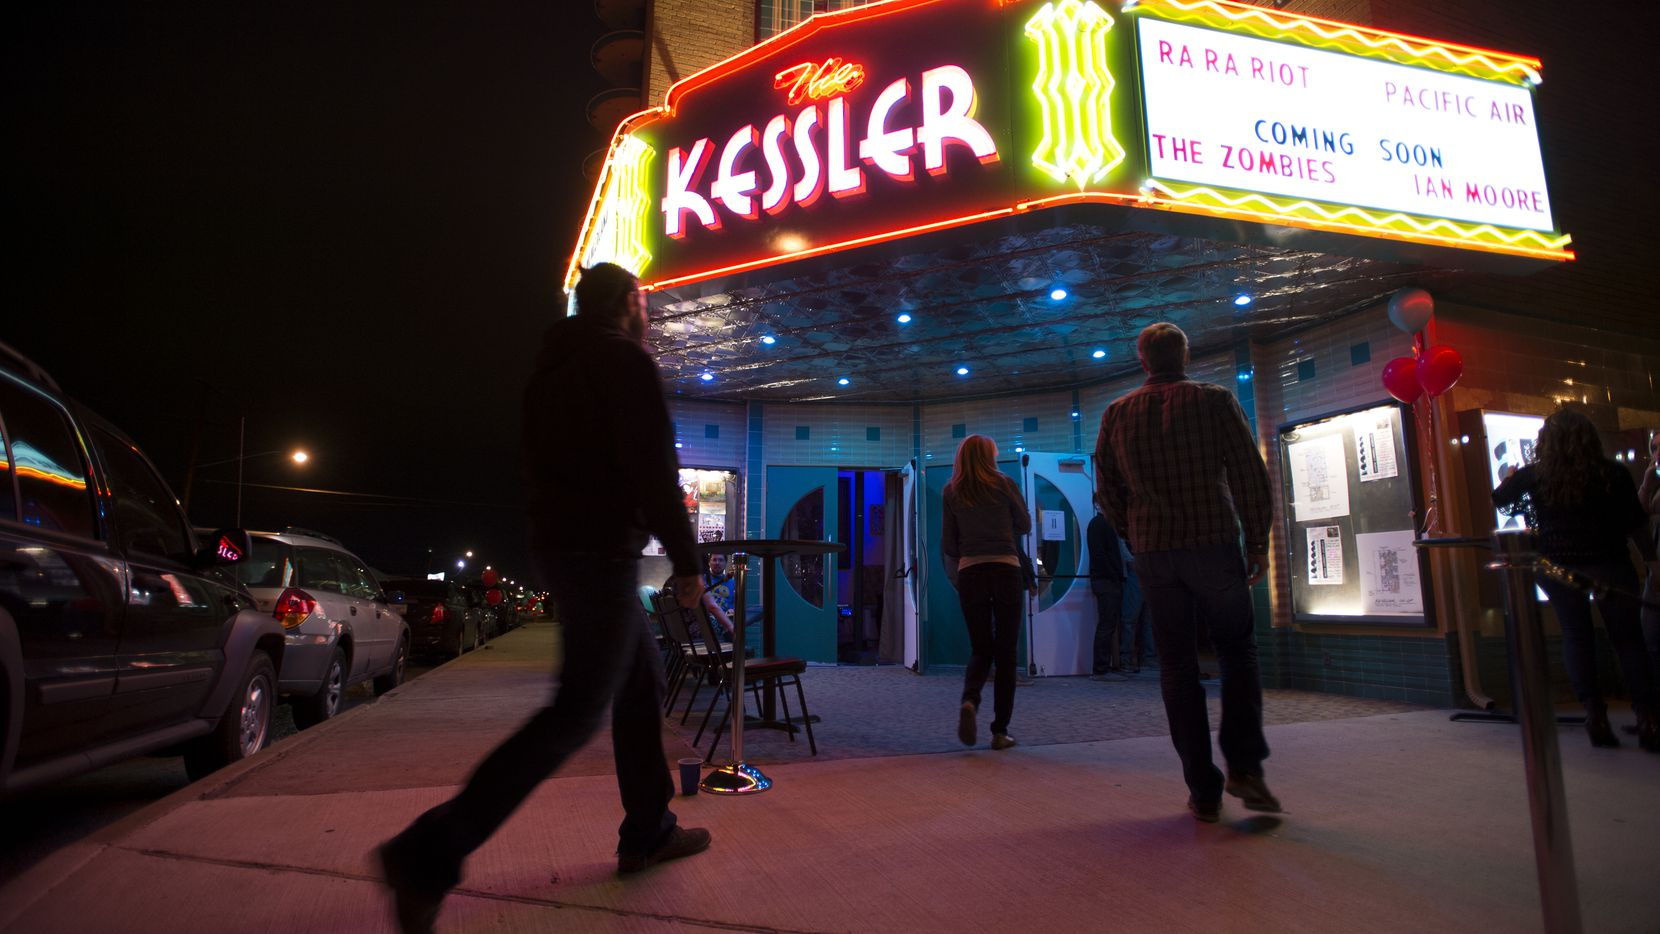 Patrons arrive at the Kessler Theater in 2013. A newly proposed program would let music venues like it — with capacities less than 3,000 — apply for tax rebates.